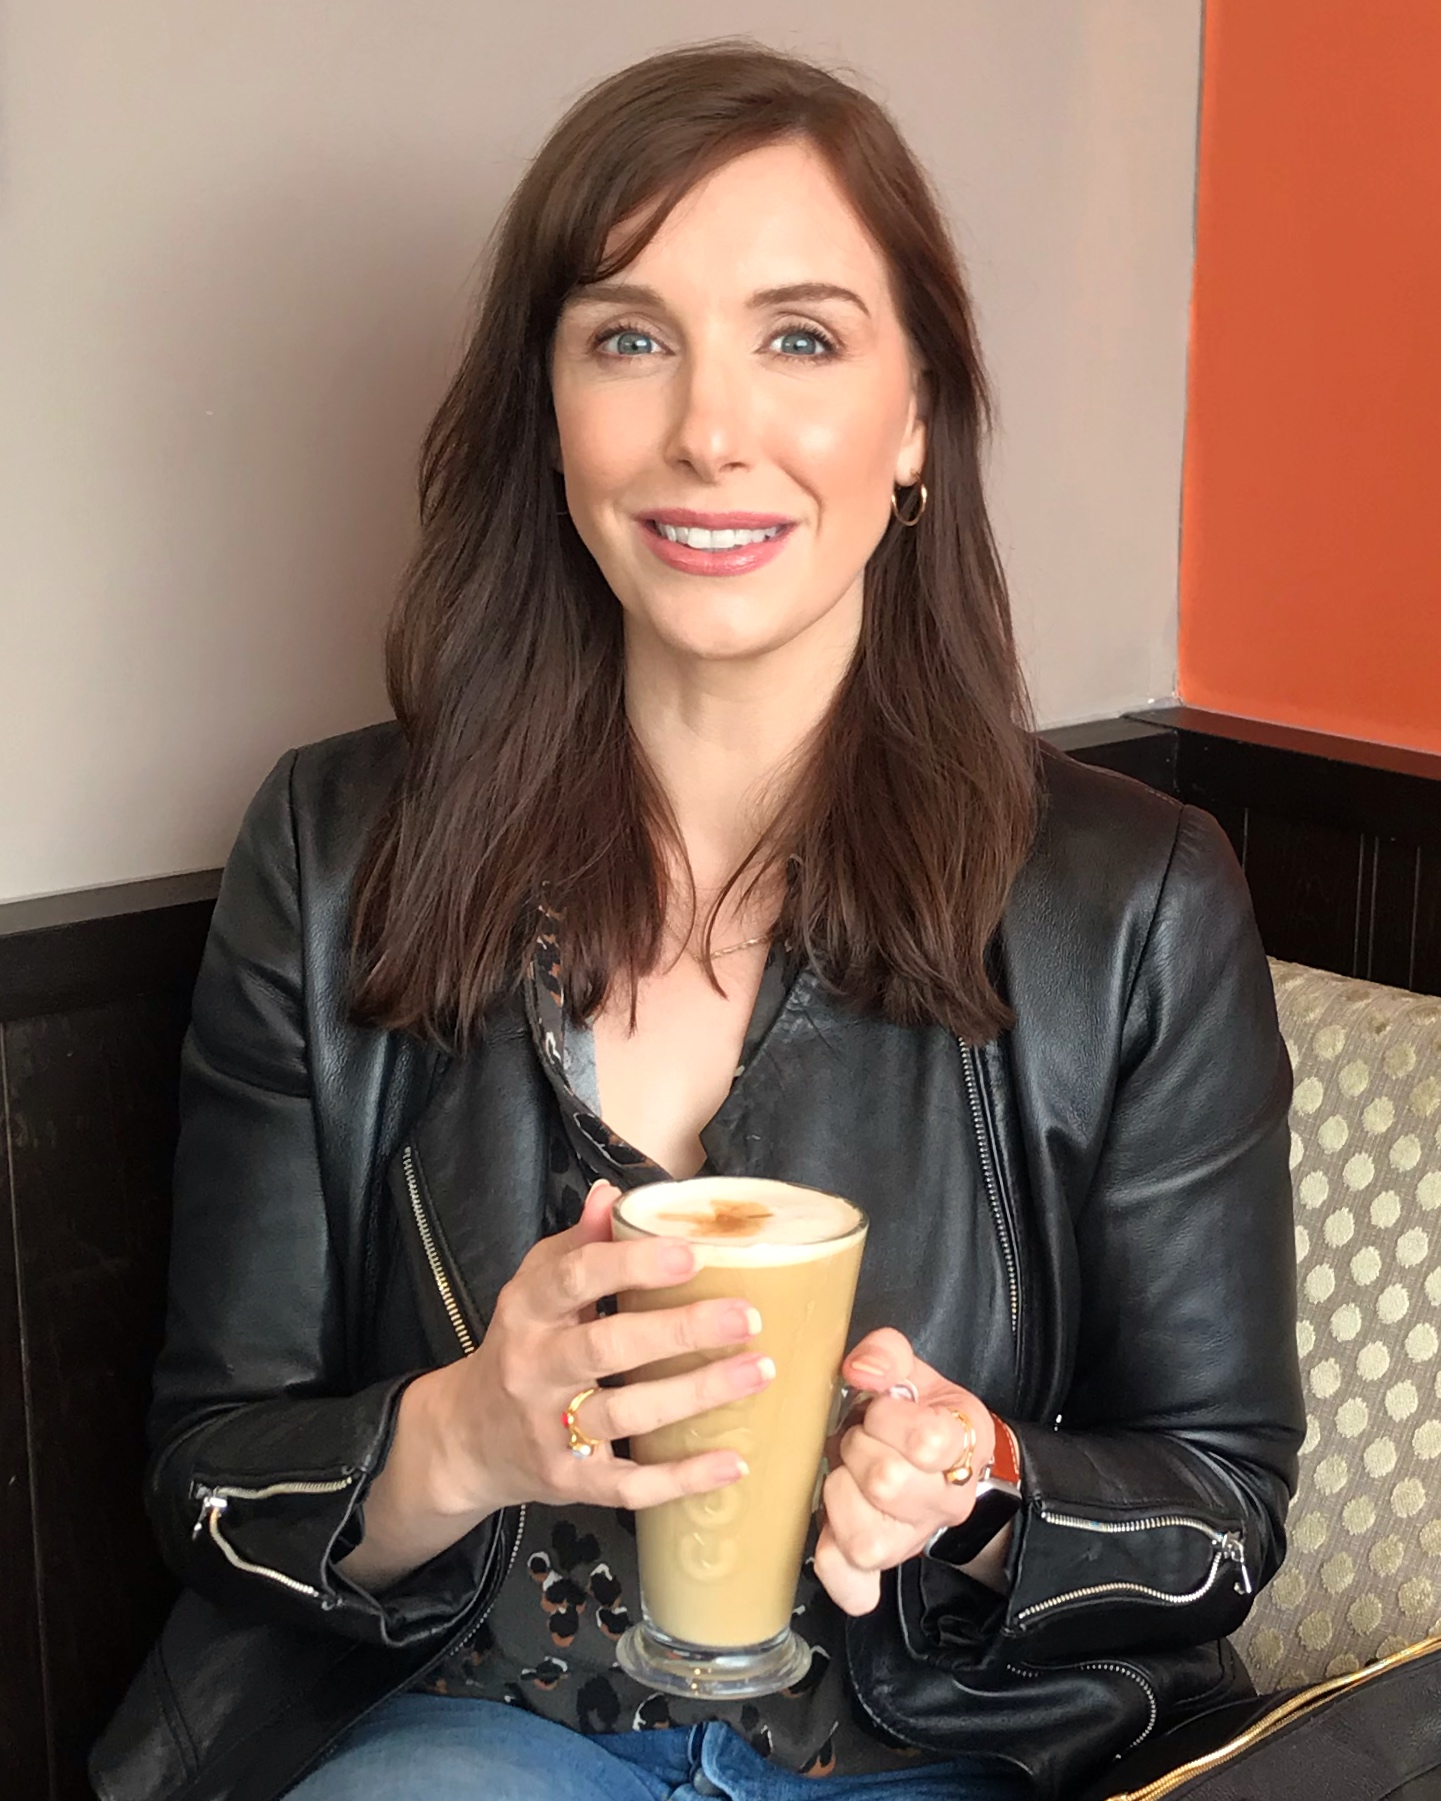 White female mid thirties, holding a cup of coffee. She is smiling and has dark brown shoulder length hair. She is sat down, in a manner to hint a conversational tone about being clumsy.